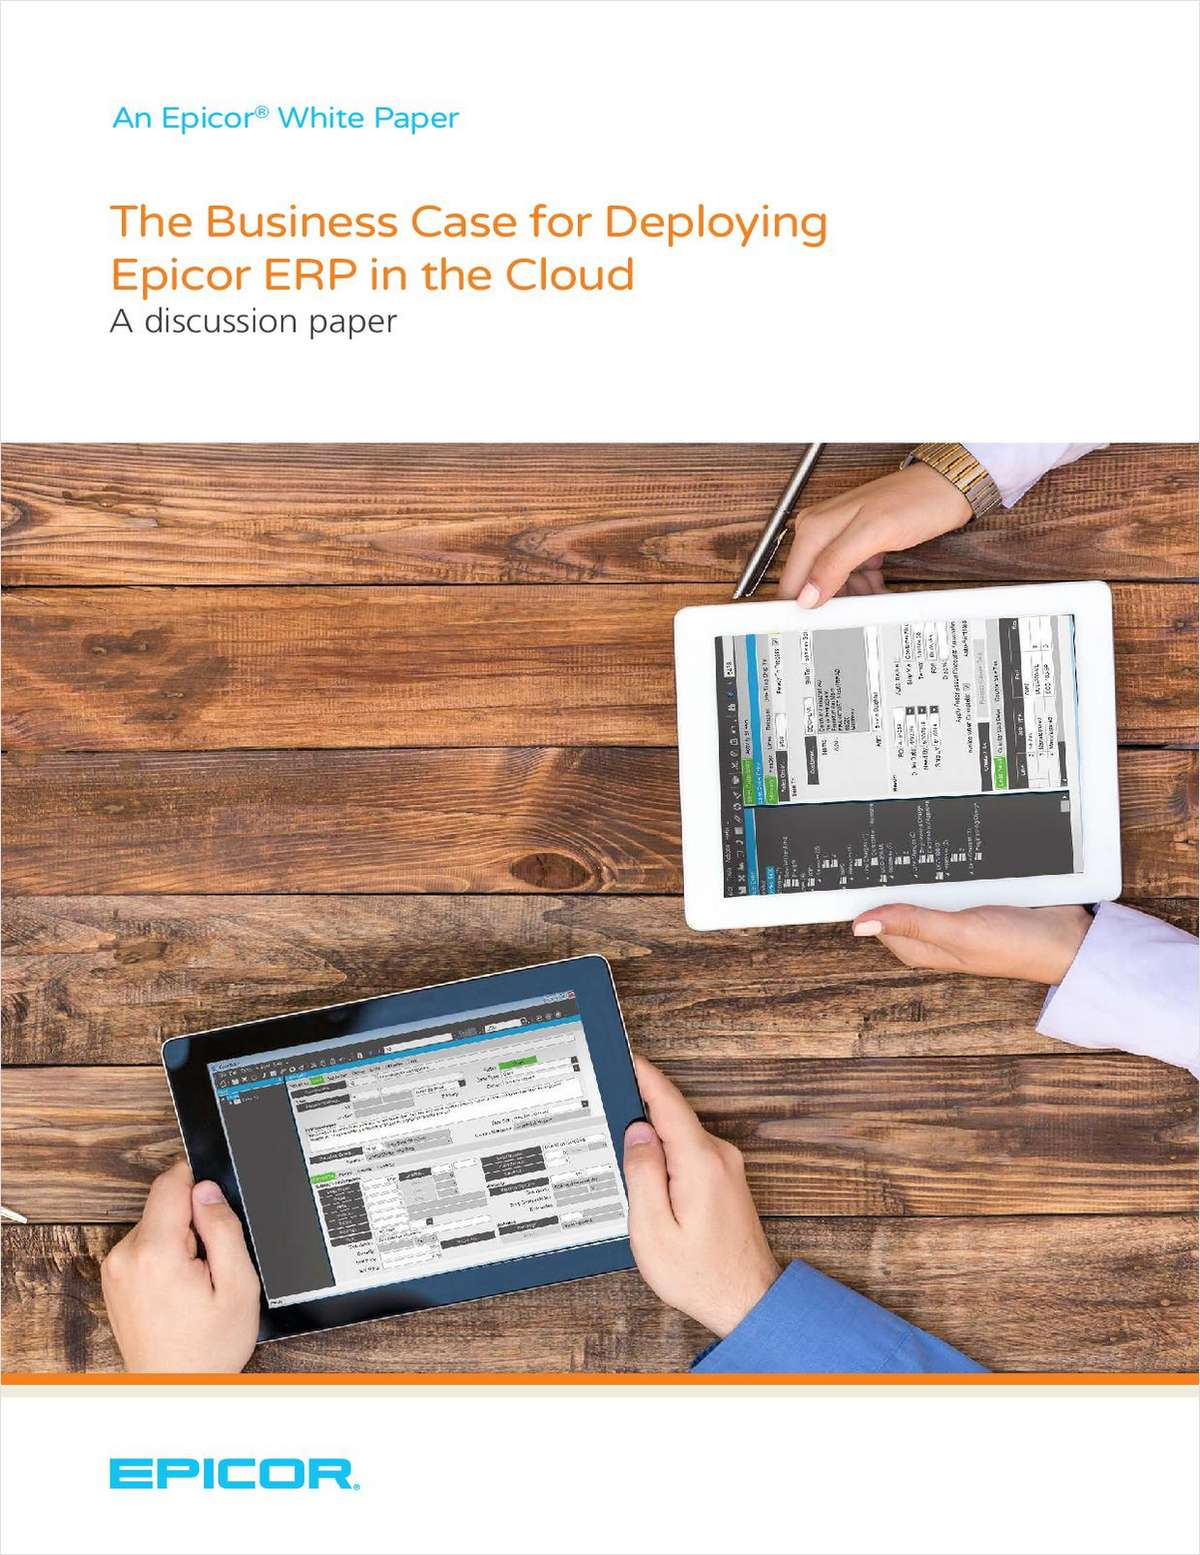 The Business Case for Deploying Epicor ERP in the Cloud